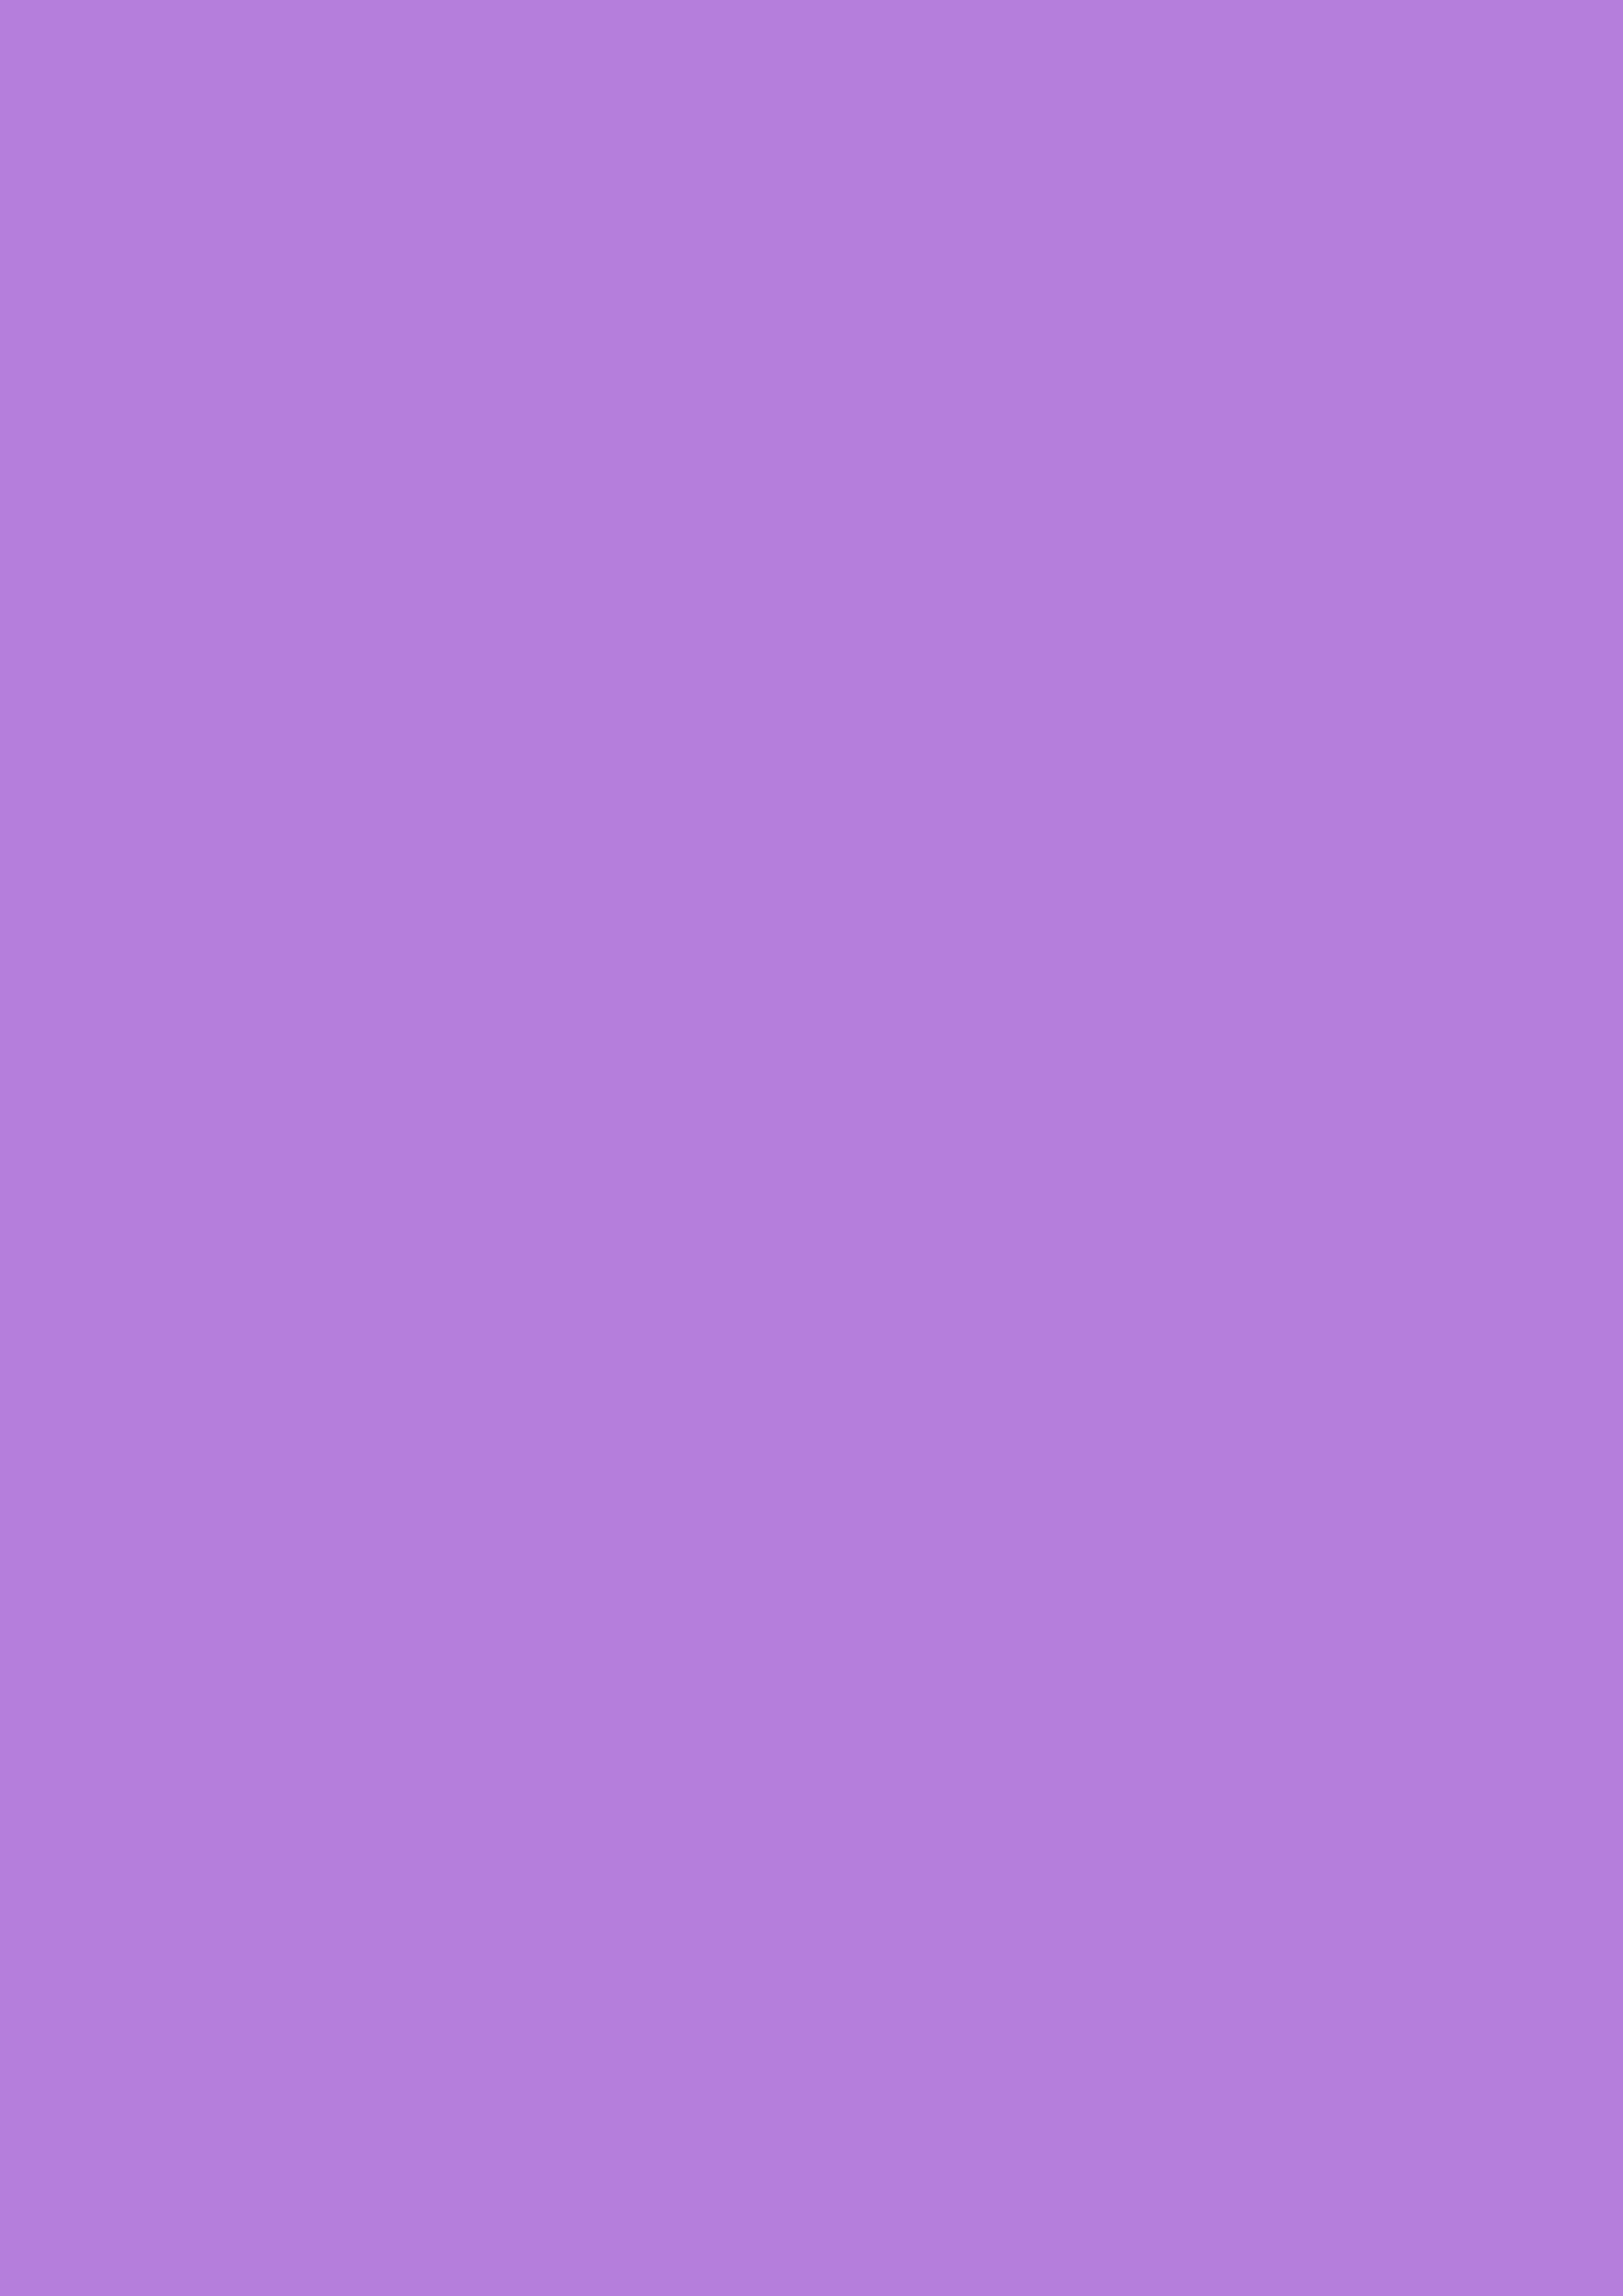 2480x3508 Lavender Floral Solid Color Background